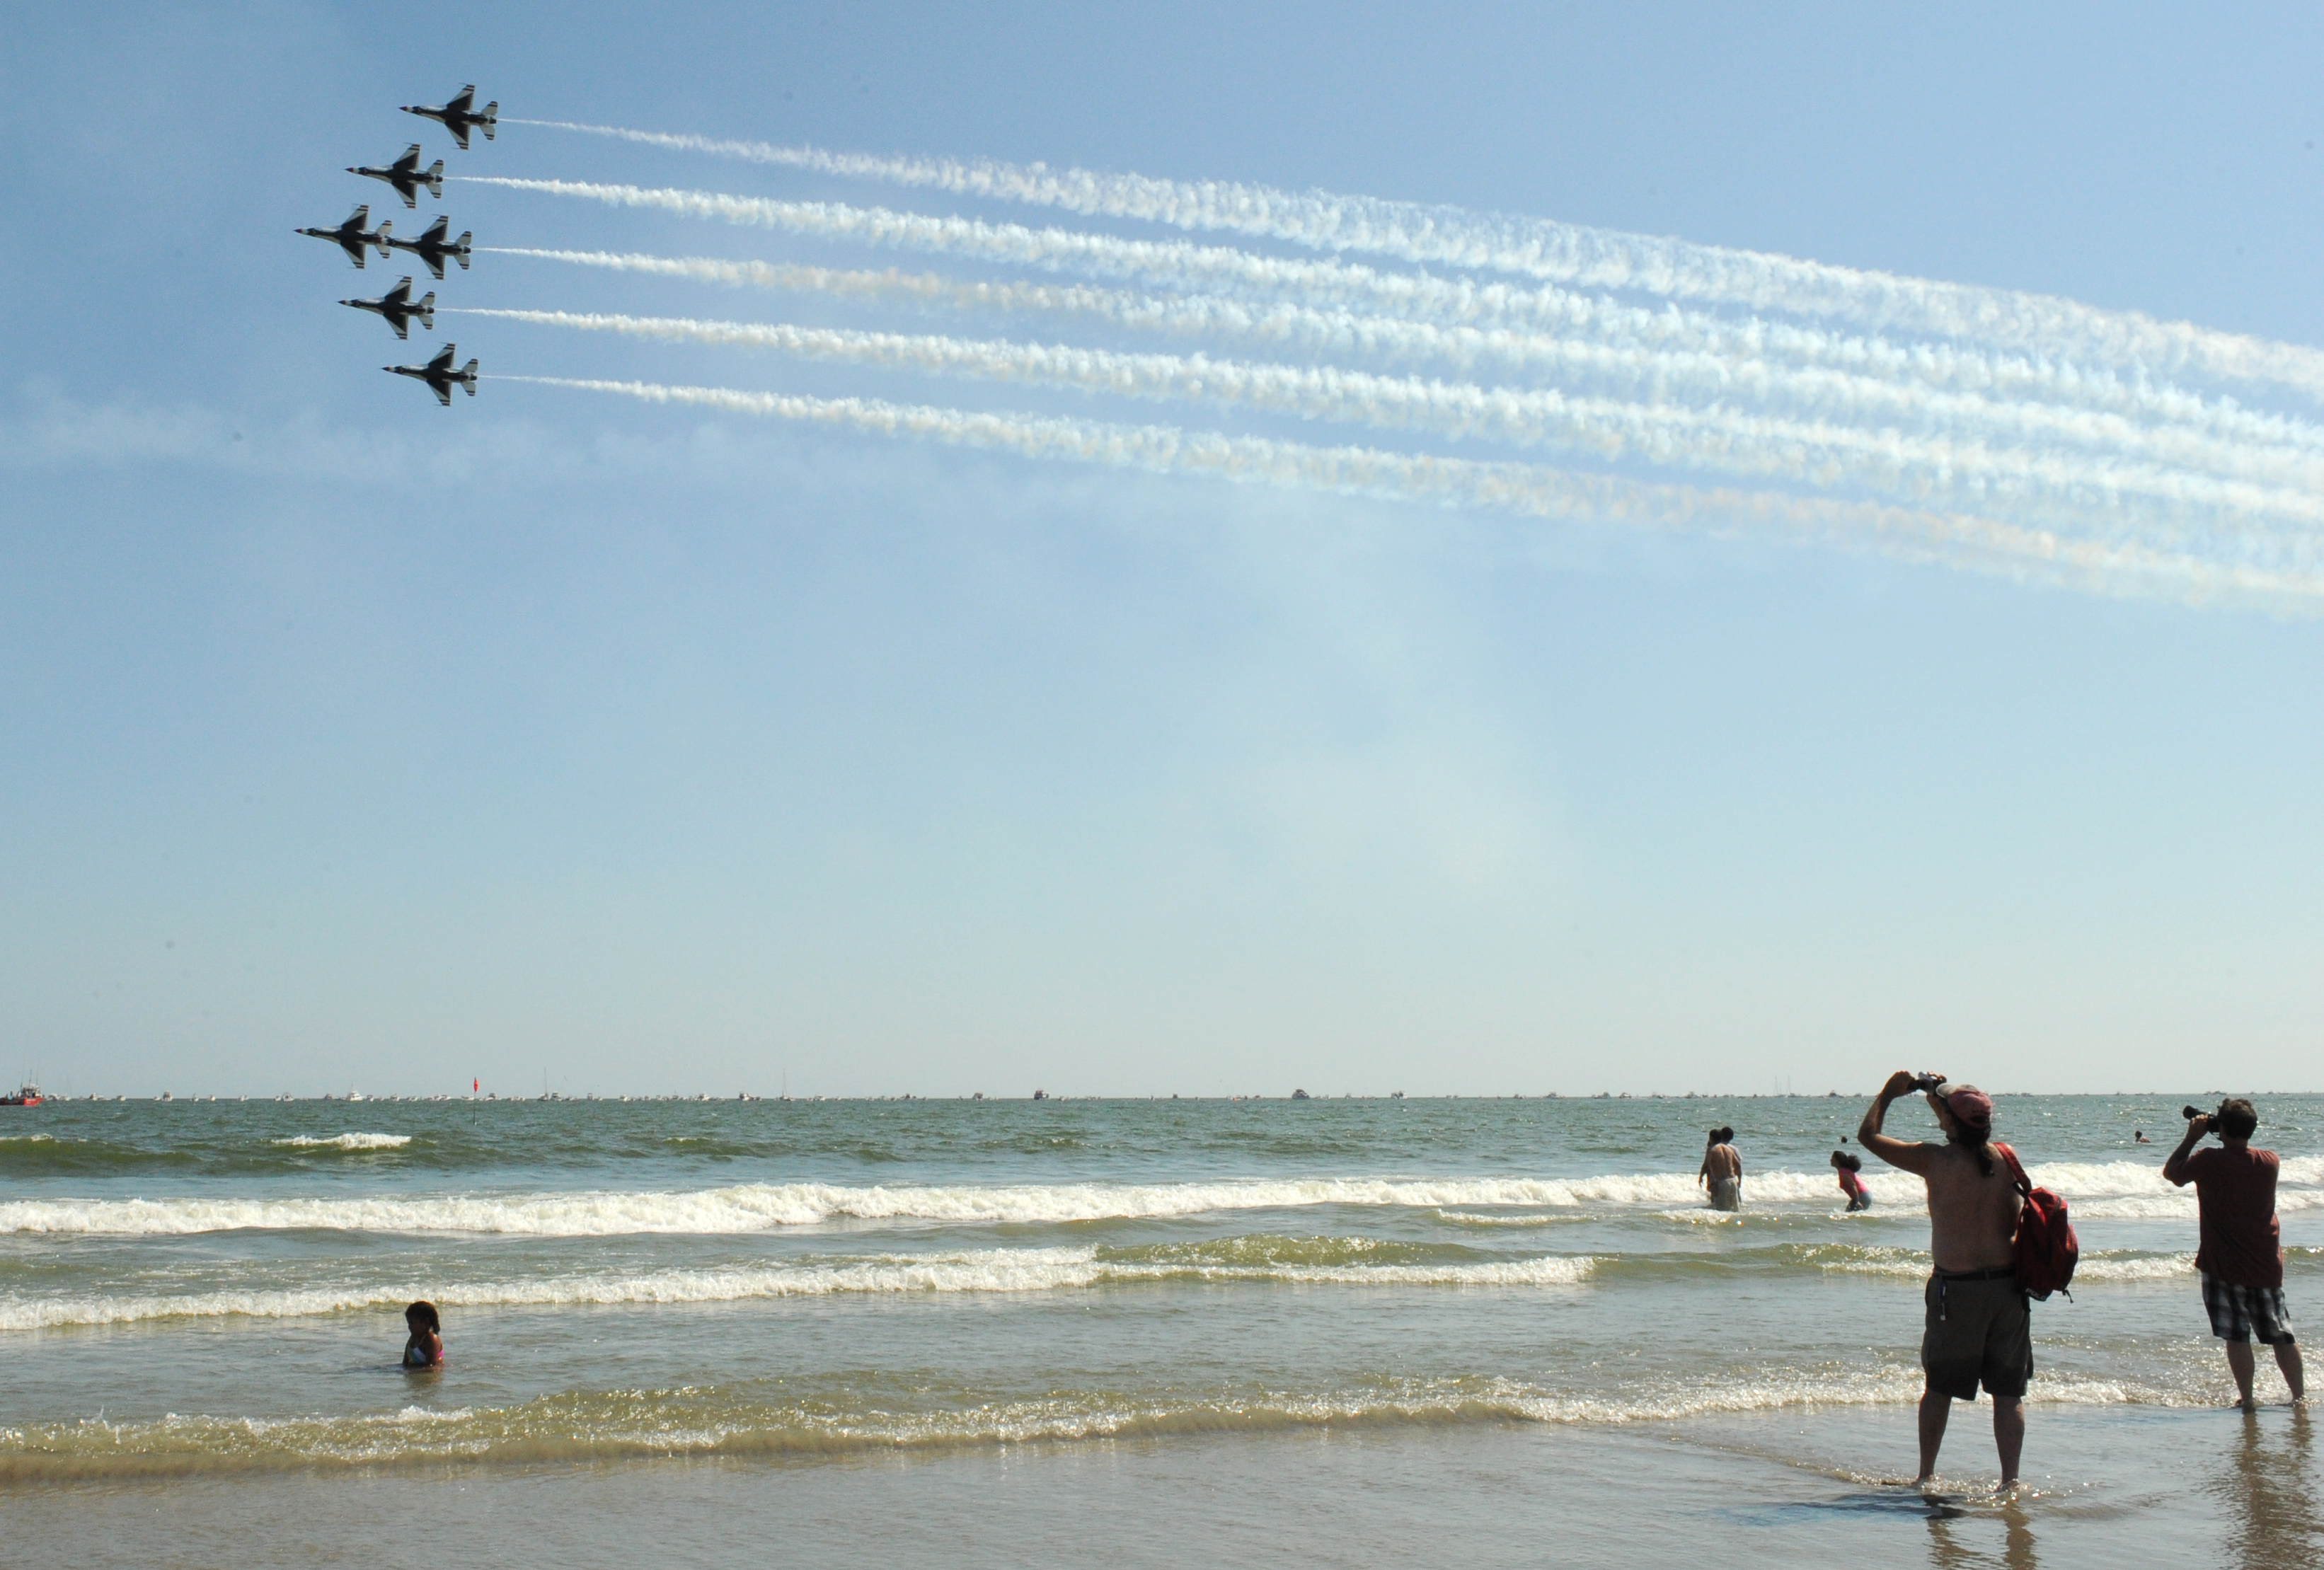 File:Atlantic City Thunder Over The Boardwalk Air Show